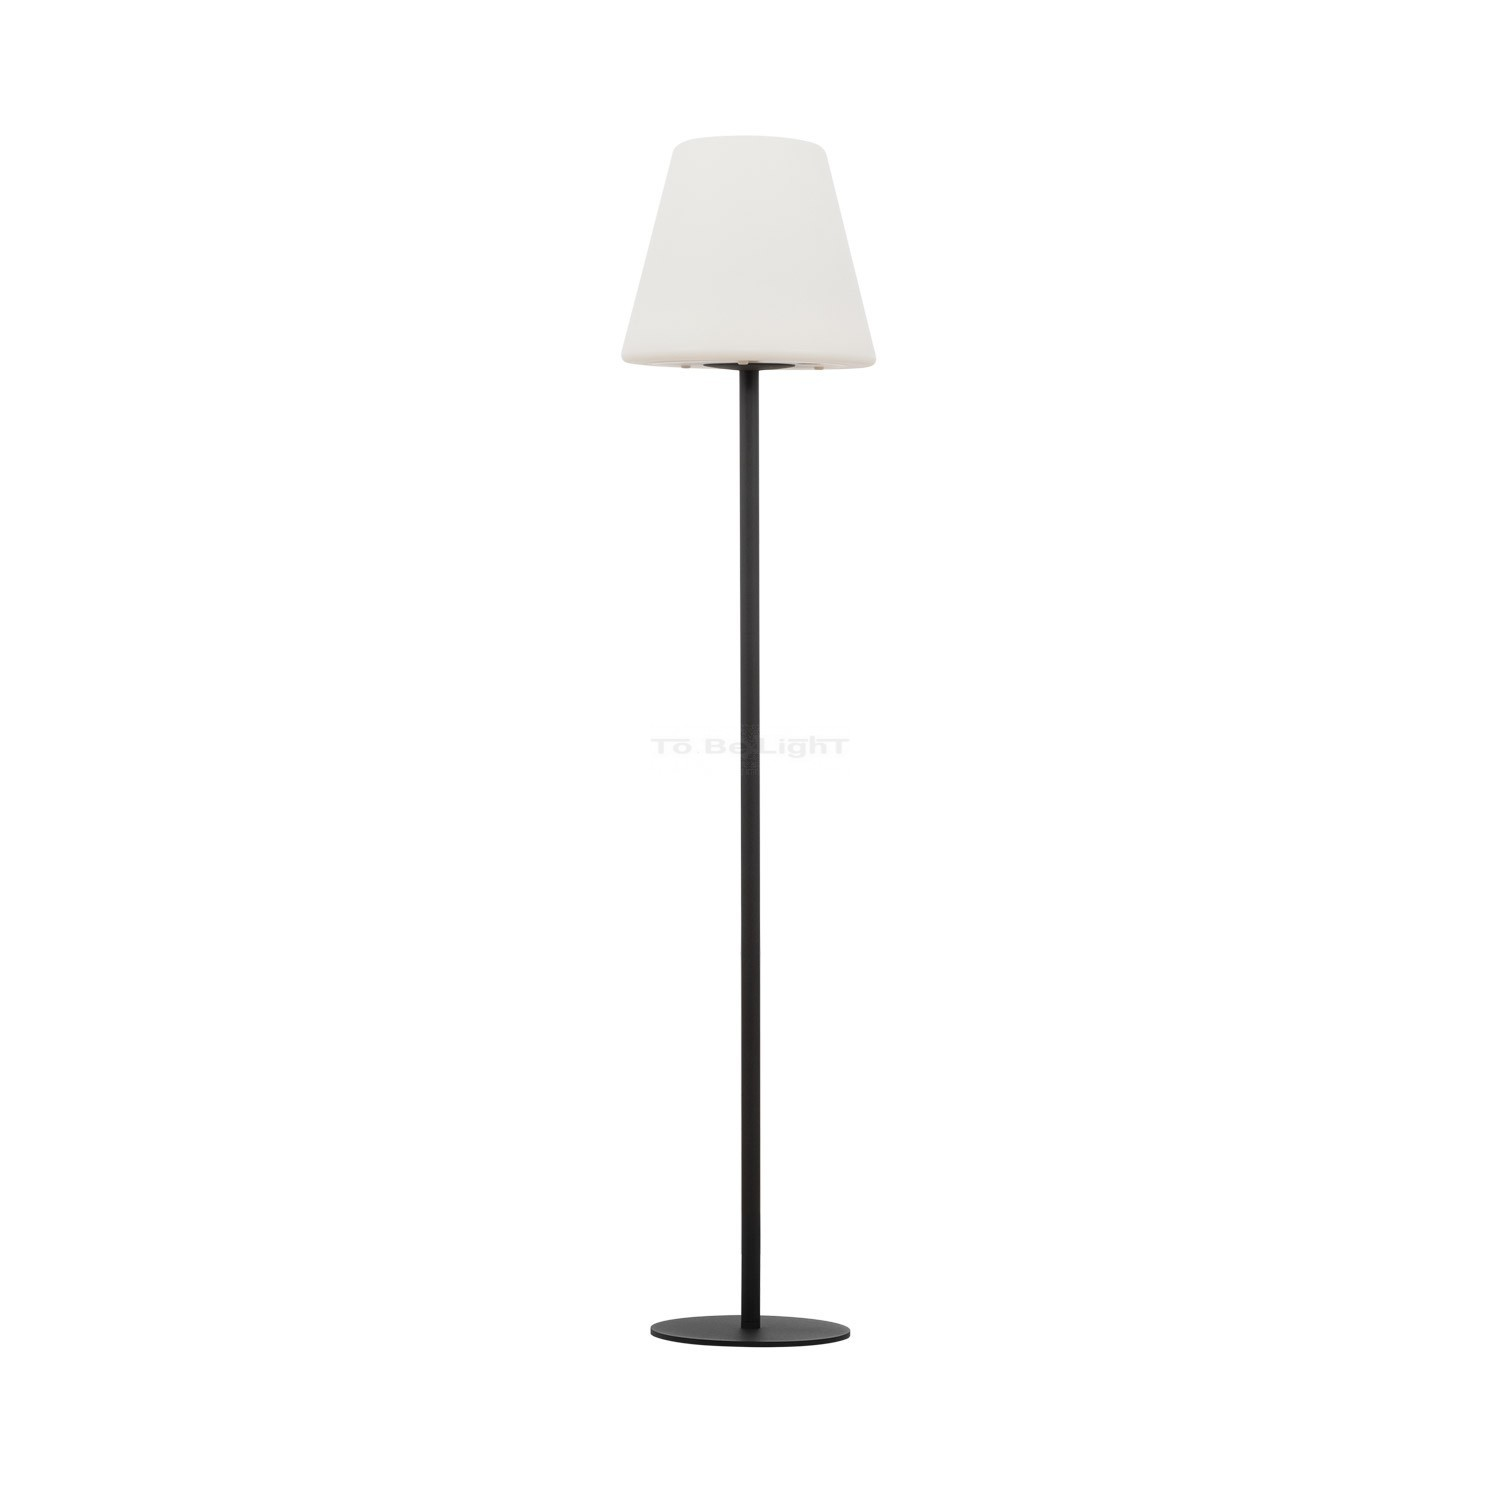 Lampe Terrasse Solaire Lampe Solaire Led Terrasse